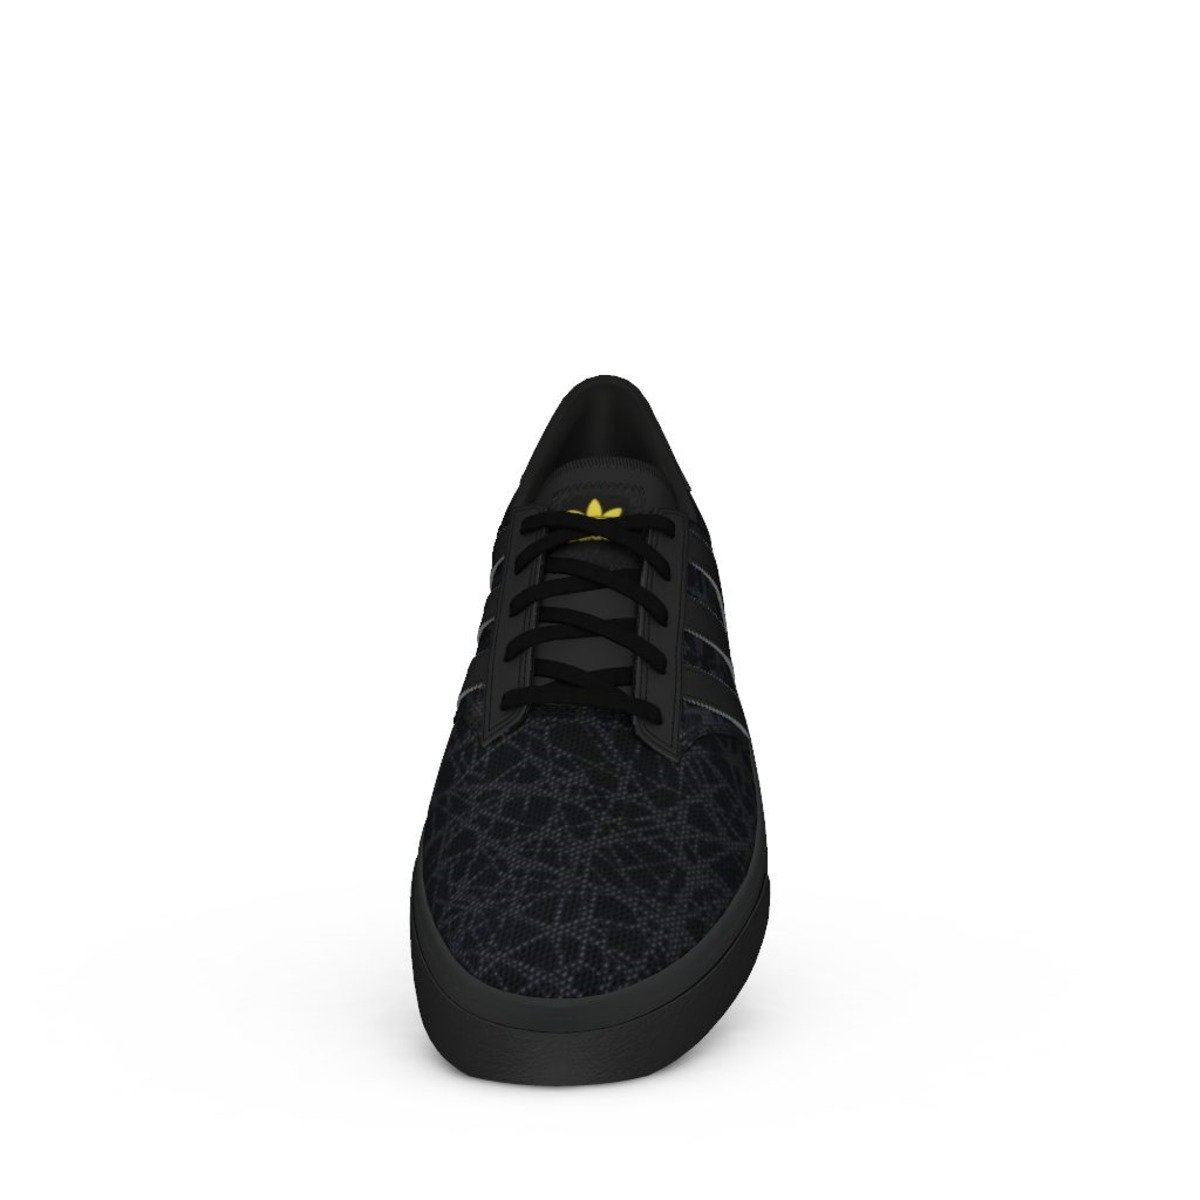 huge discount 7d46e dffd4 Basketball Shoes F37716 Casual Adidas Seeley Premiere gIW0Z